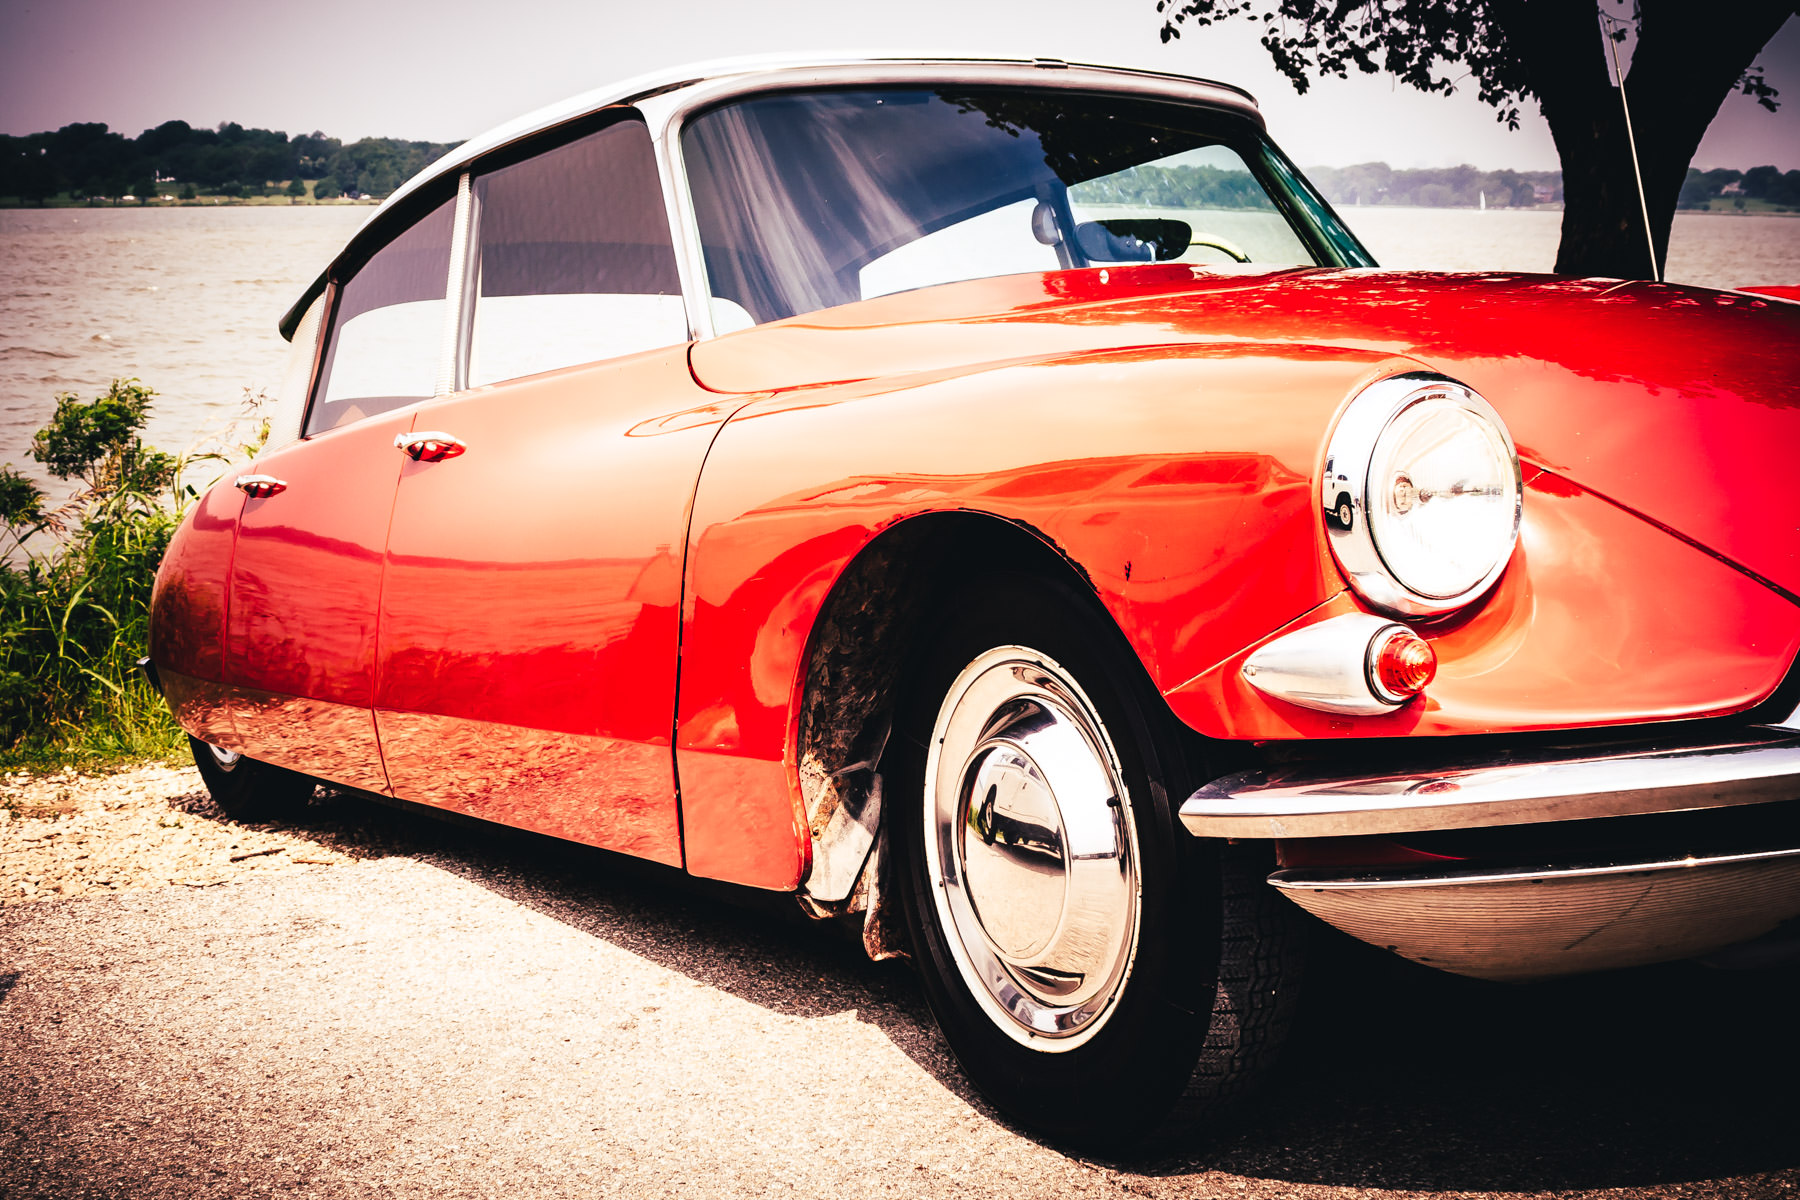 A Citroën DS at Dallas' All British and European Car Day.